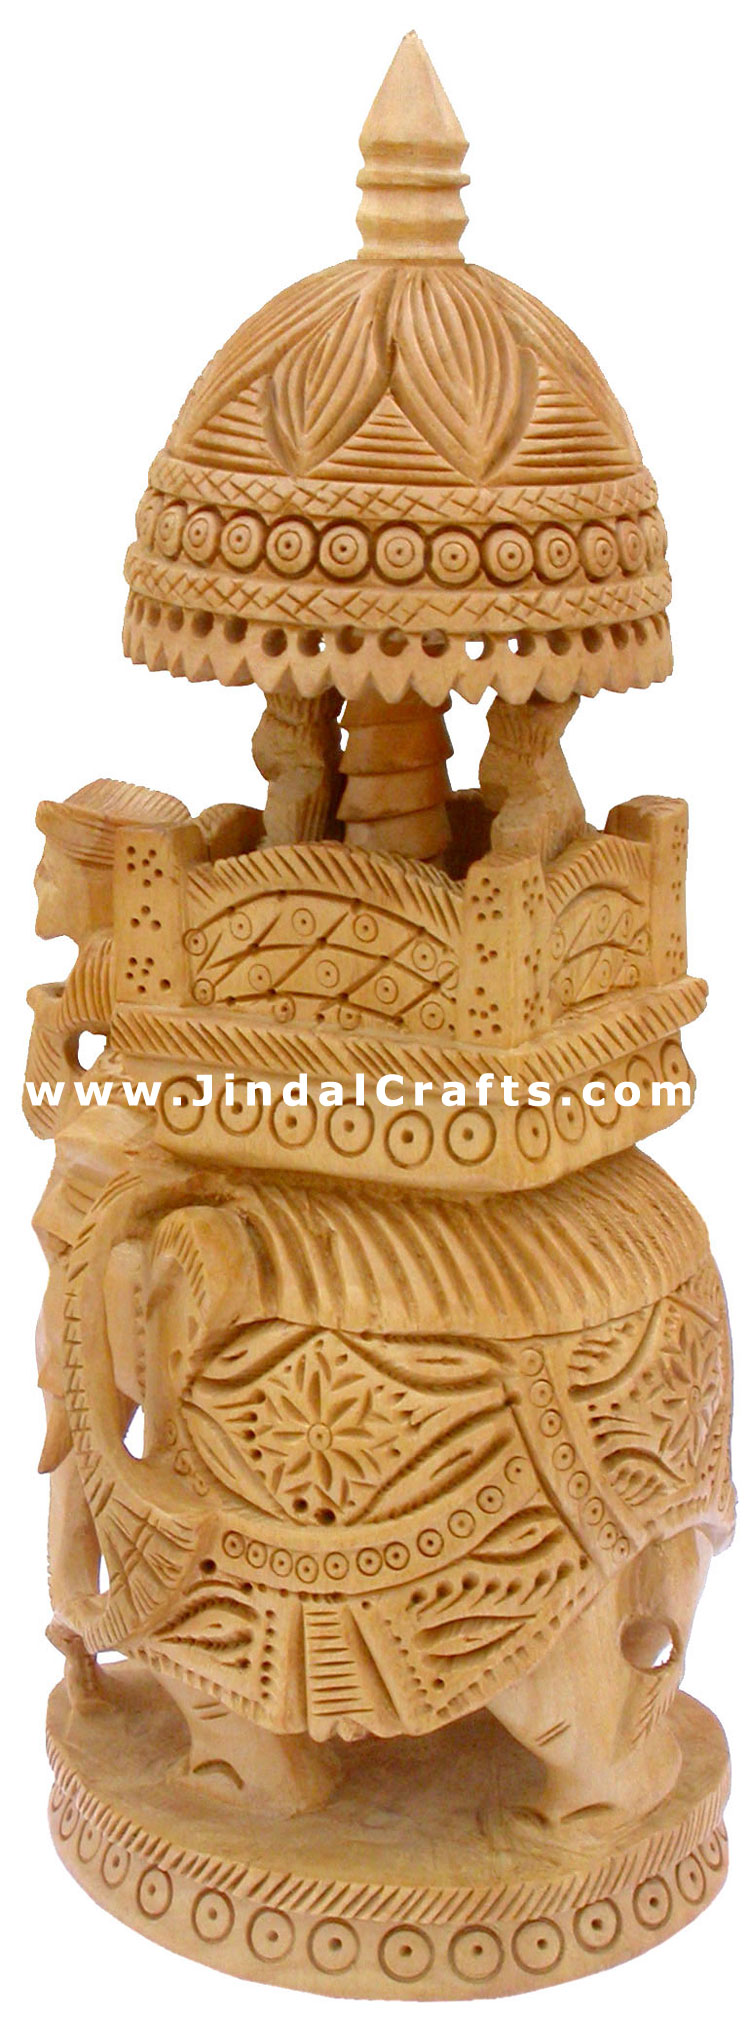 Hand carved wooden royal king s jungle safari india art